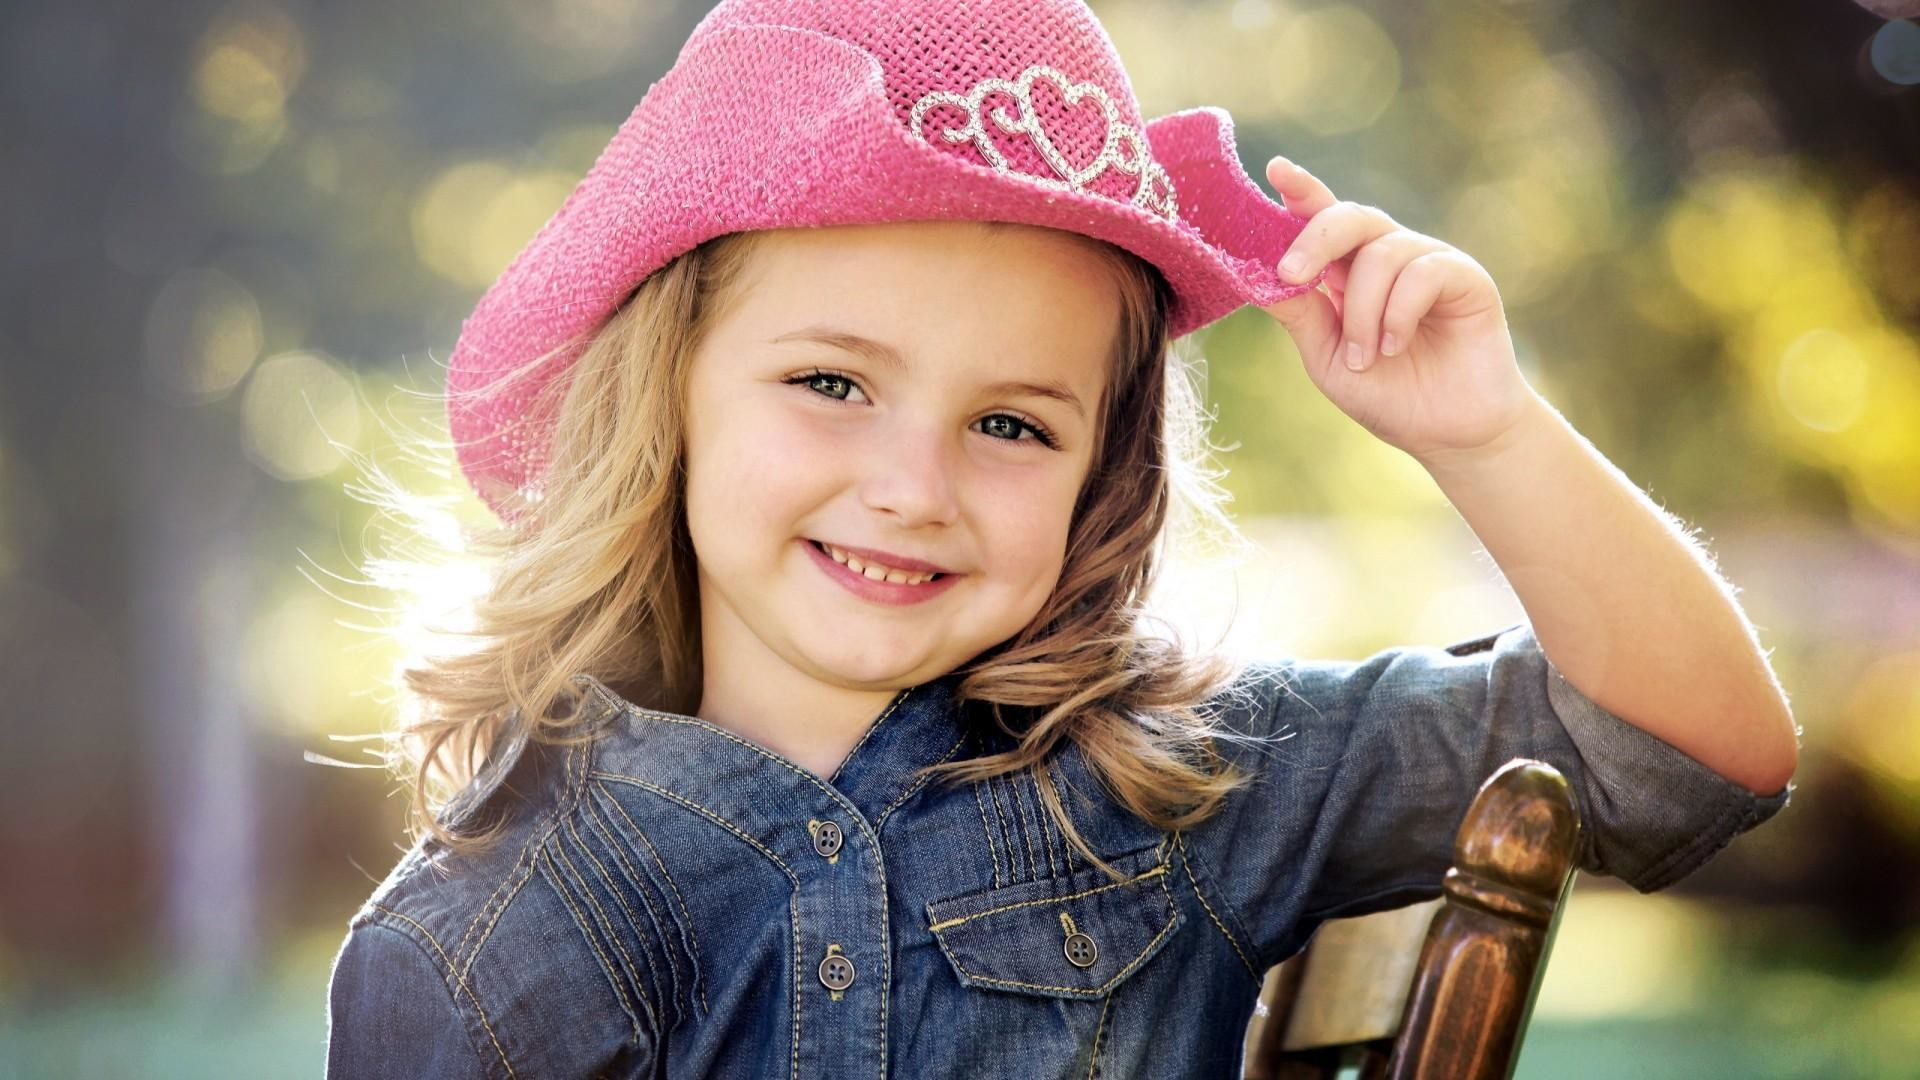 Cute Baby Girl Hd Wallpapers - Baby Girl Smiling , HD Wallpaper & Backgrounds